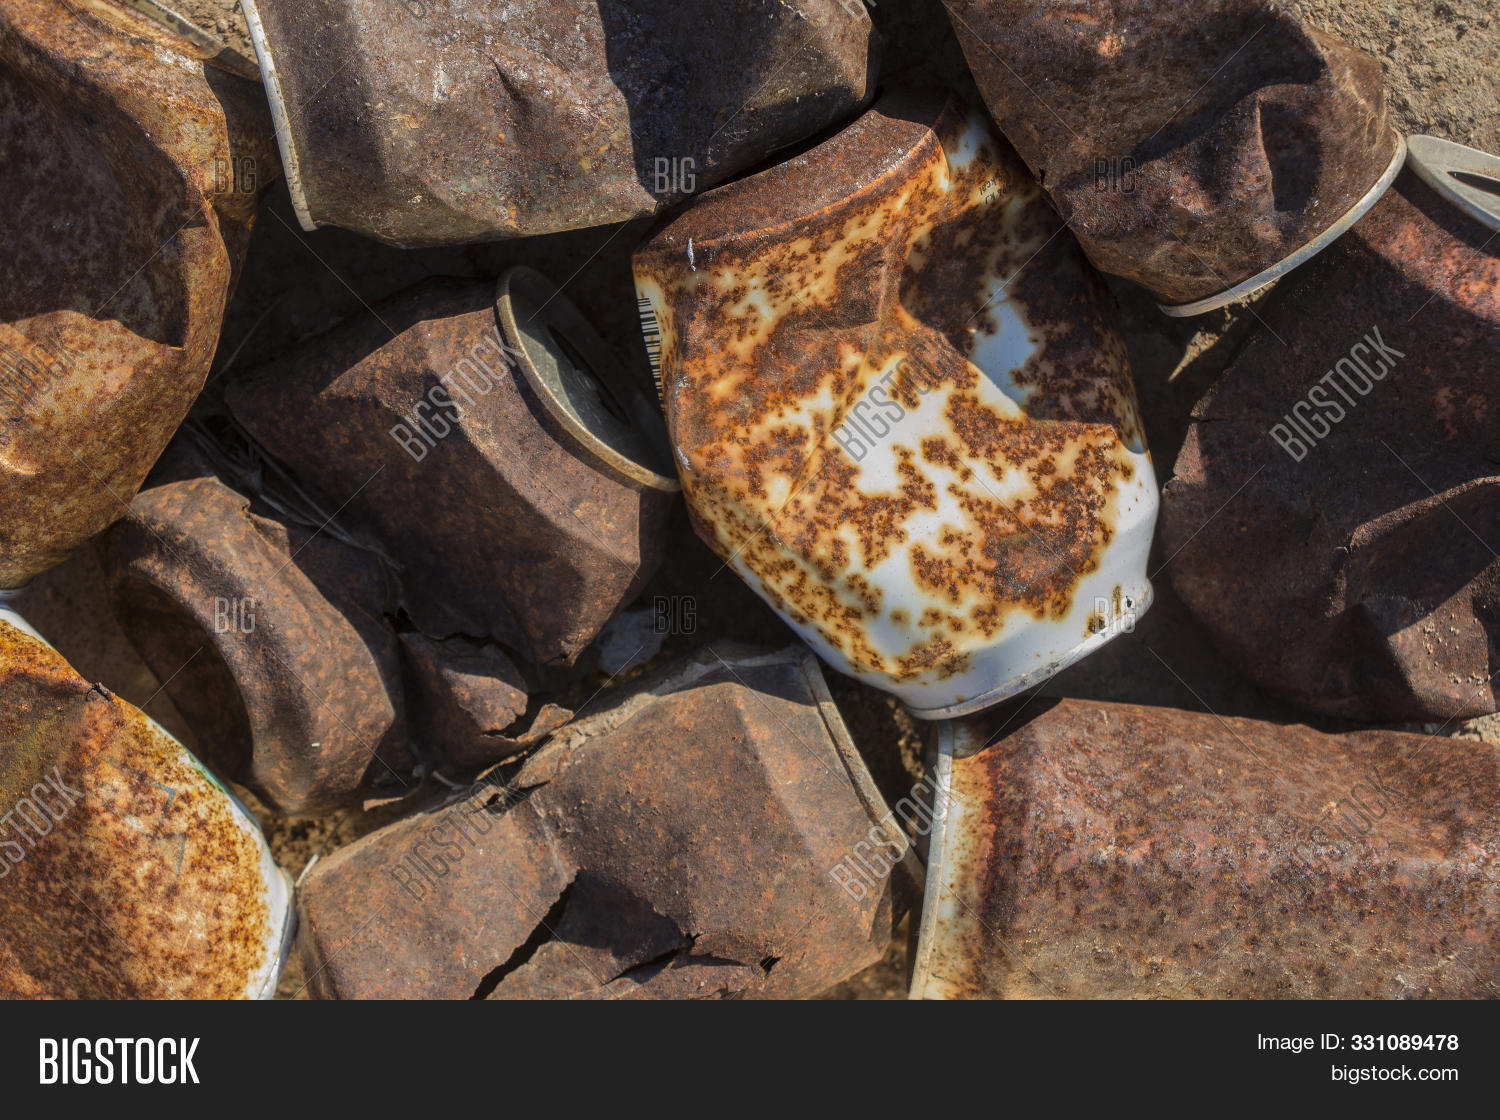 close-up of overhead view of rusty tin cans, texture of beverage cans, rusty cans of soda, rusty cans lying in the field, trash